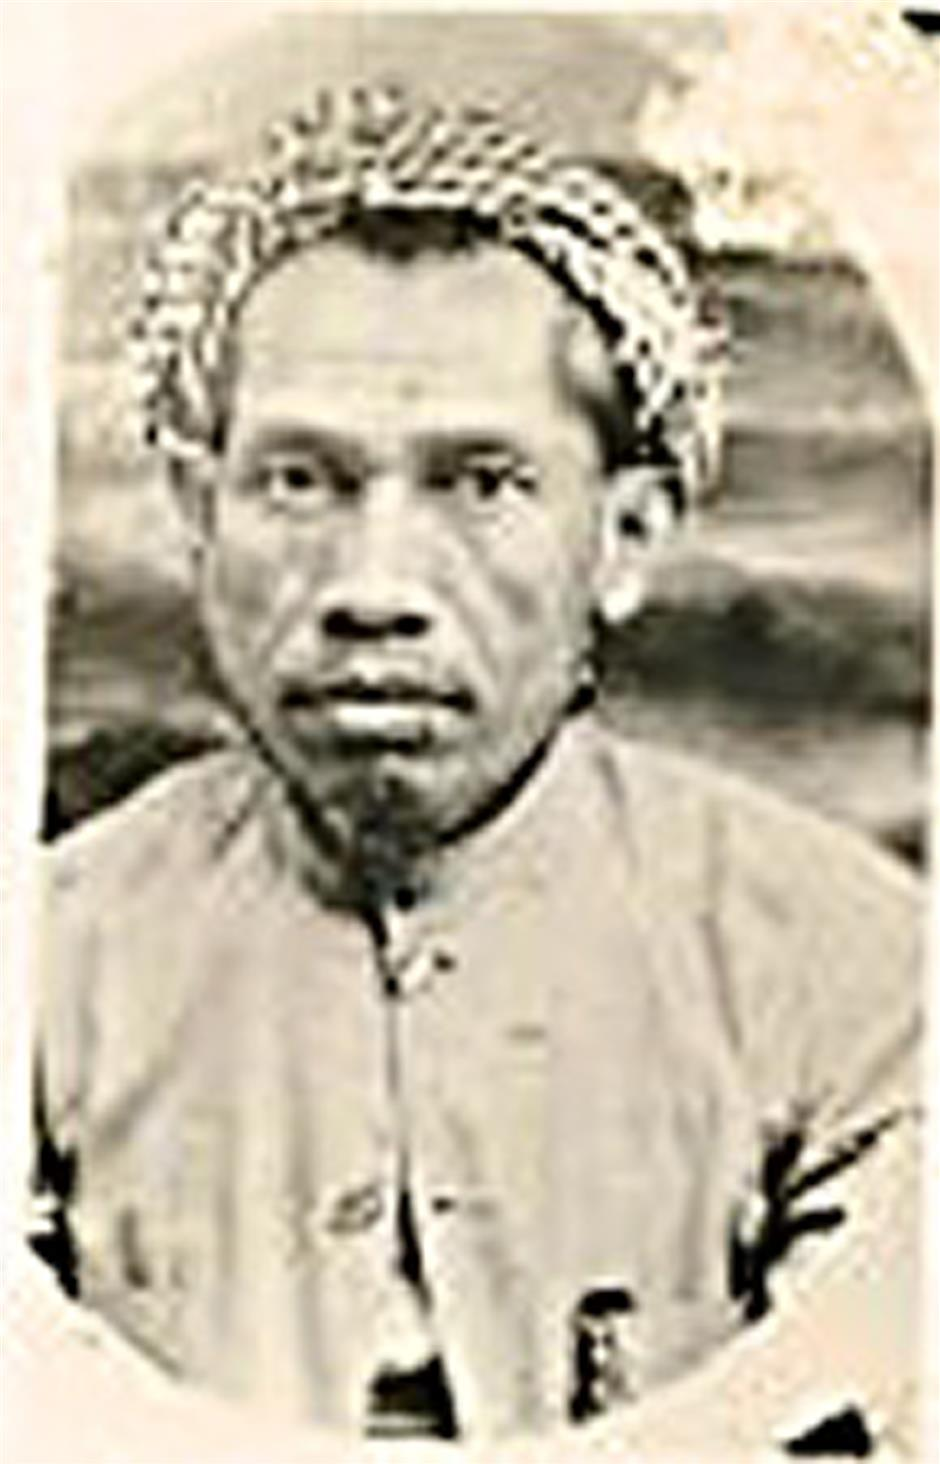 Industrious tradesman: Haji Mohamed Taib bin Haji Abdul Samad (1858 - 1925), with his diligent and enterprising spirit had made himself one of the richest Malays in Kuala Lumpur in his time. (Photo from the Internet)